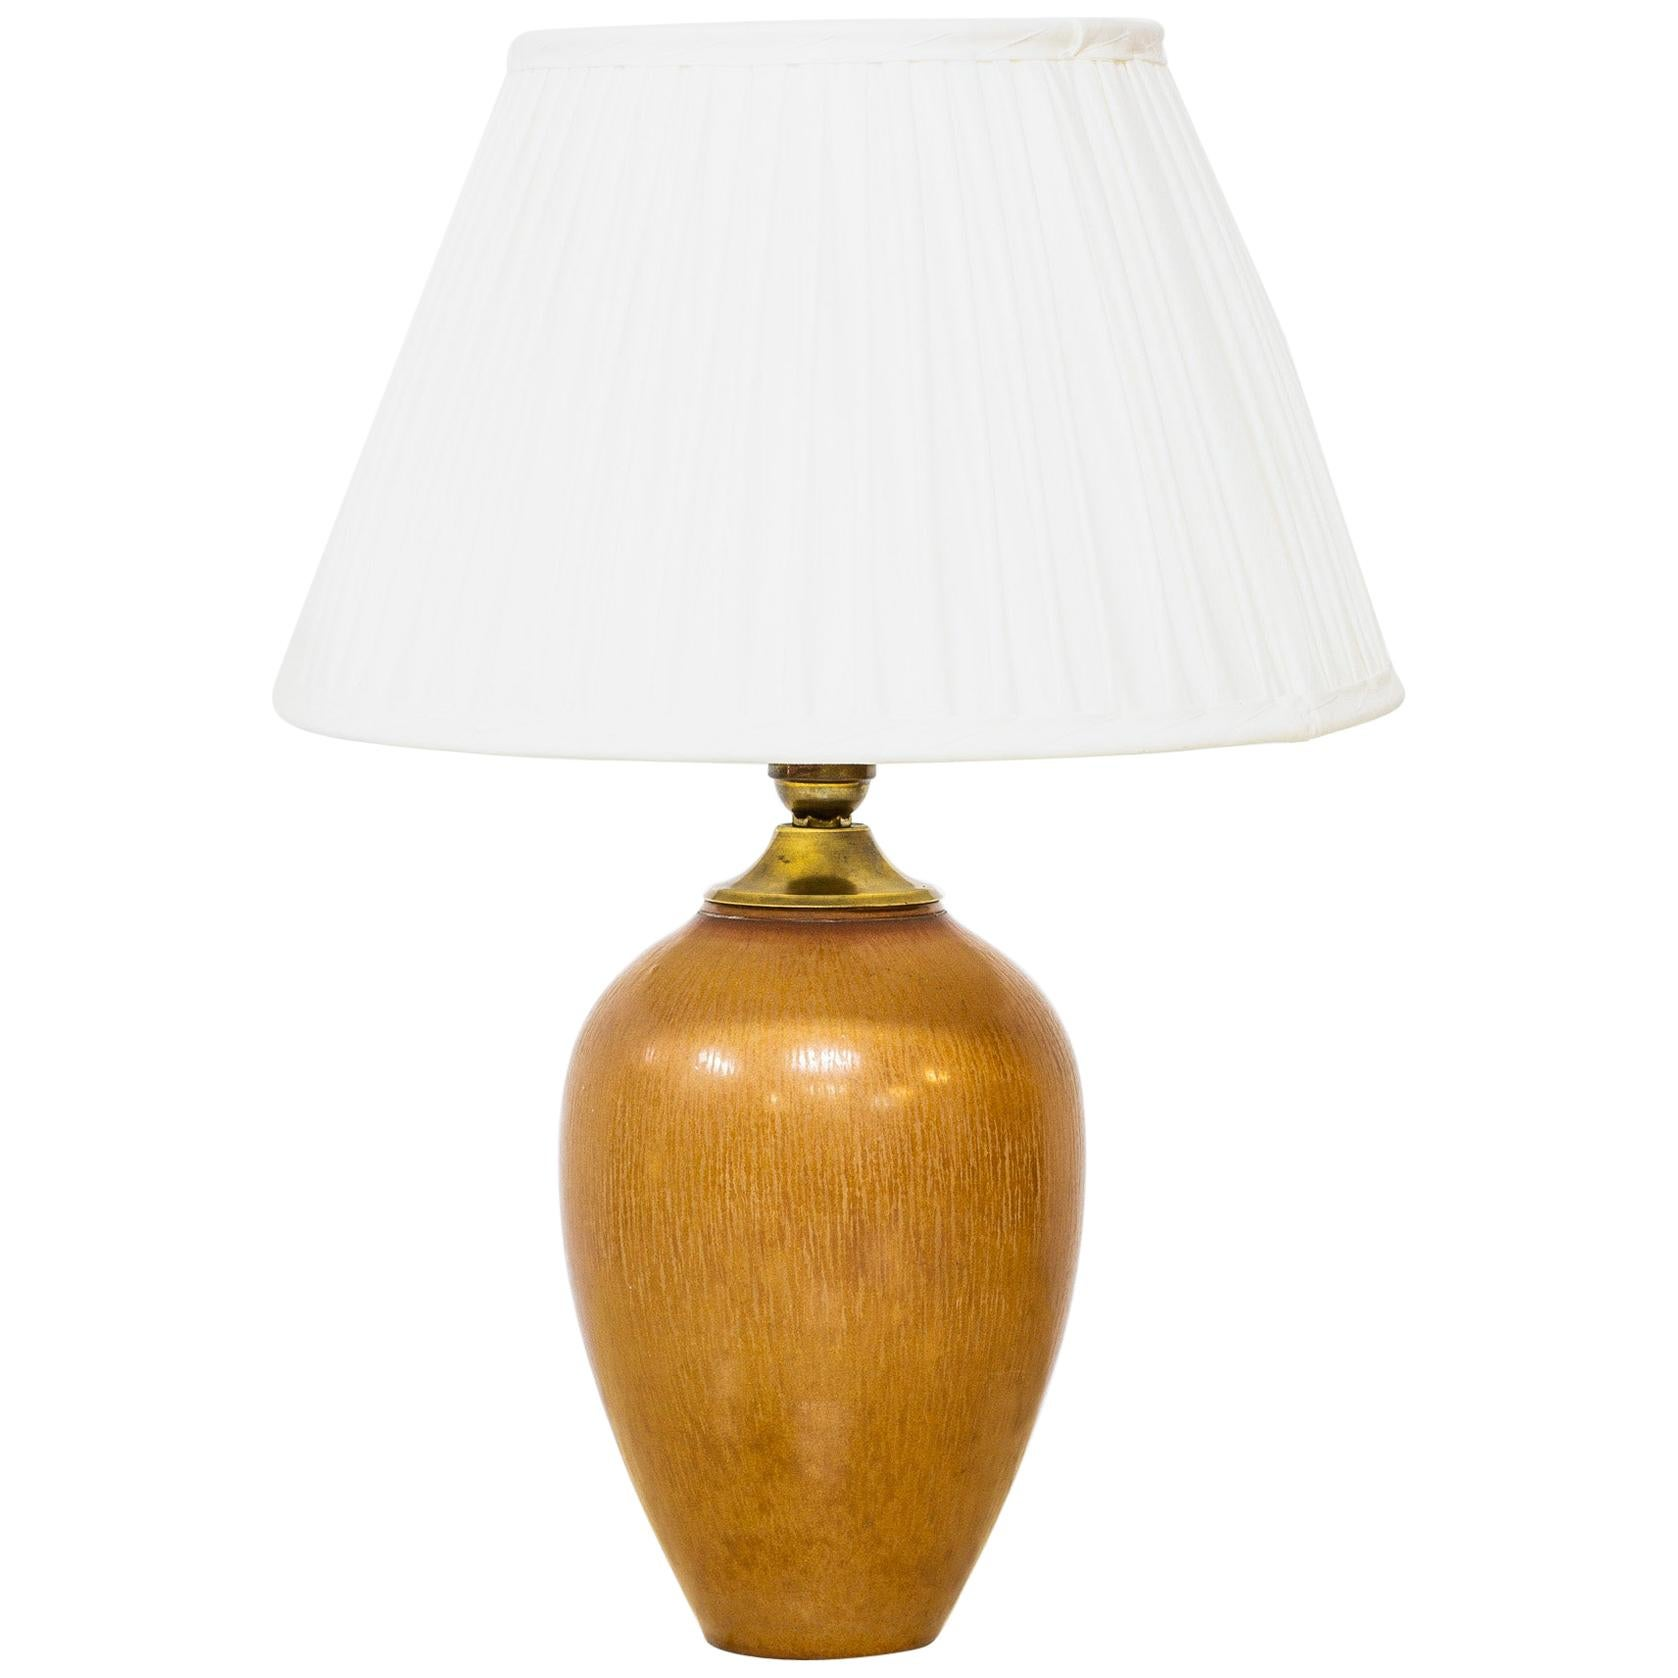 Stoneware Table Lamp by Gunnar Nylund for Rörstrand, Sweden, 1950s